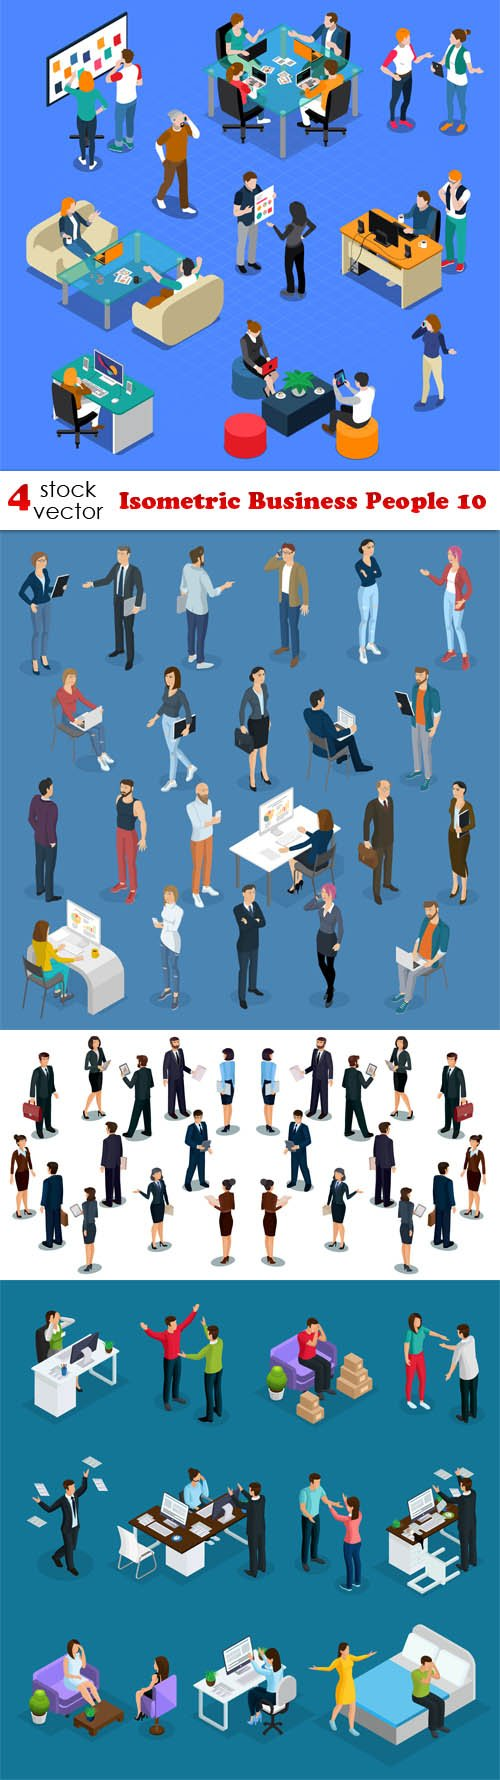 Vectors - Isometric Business People 10